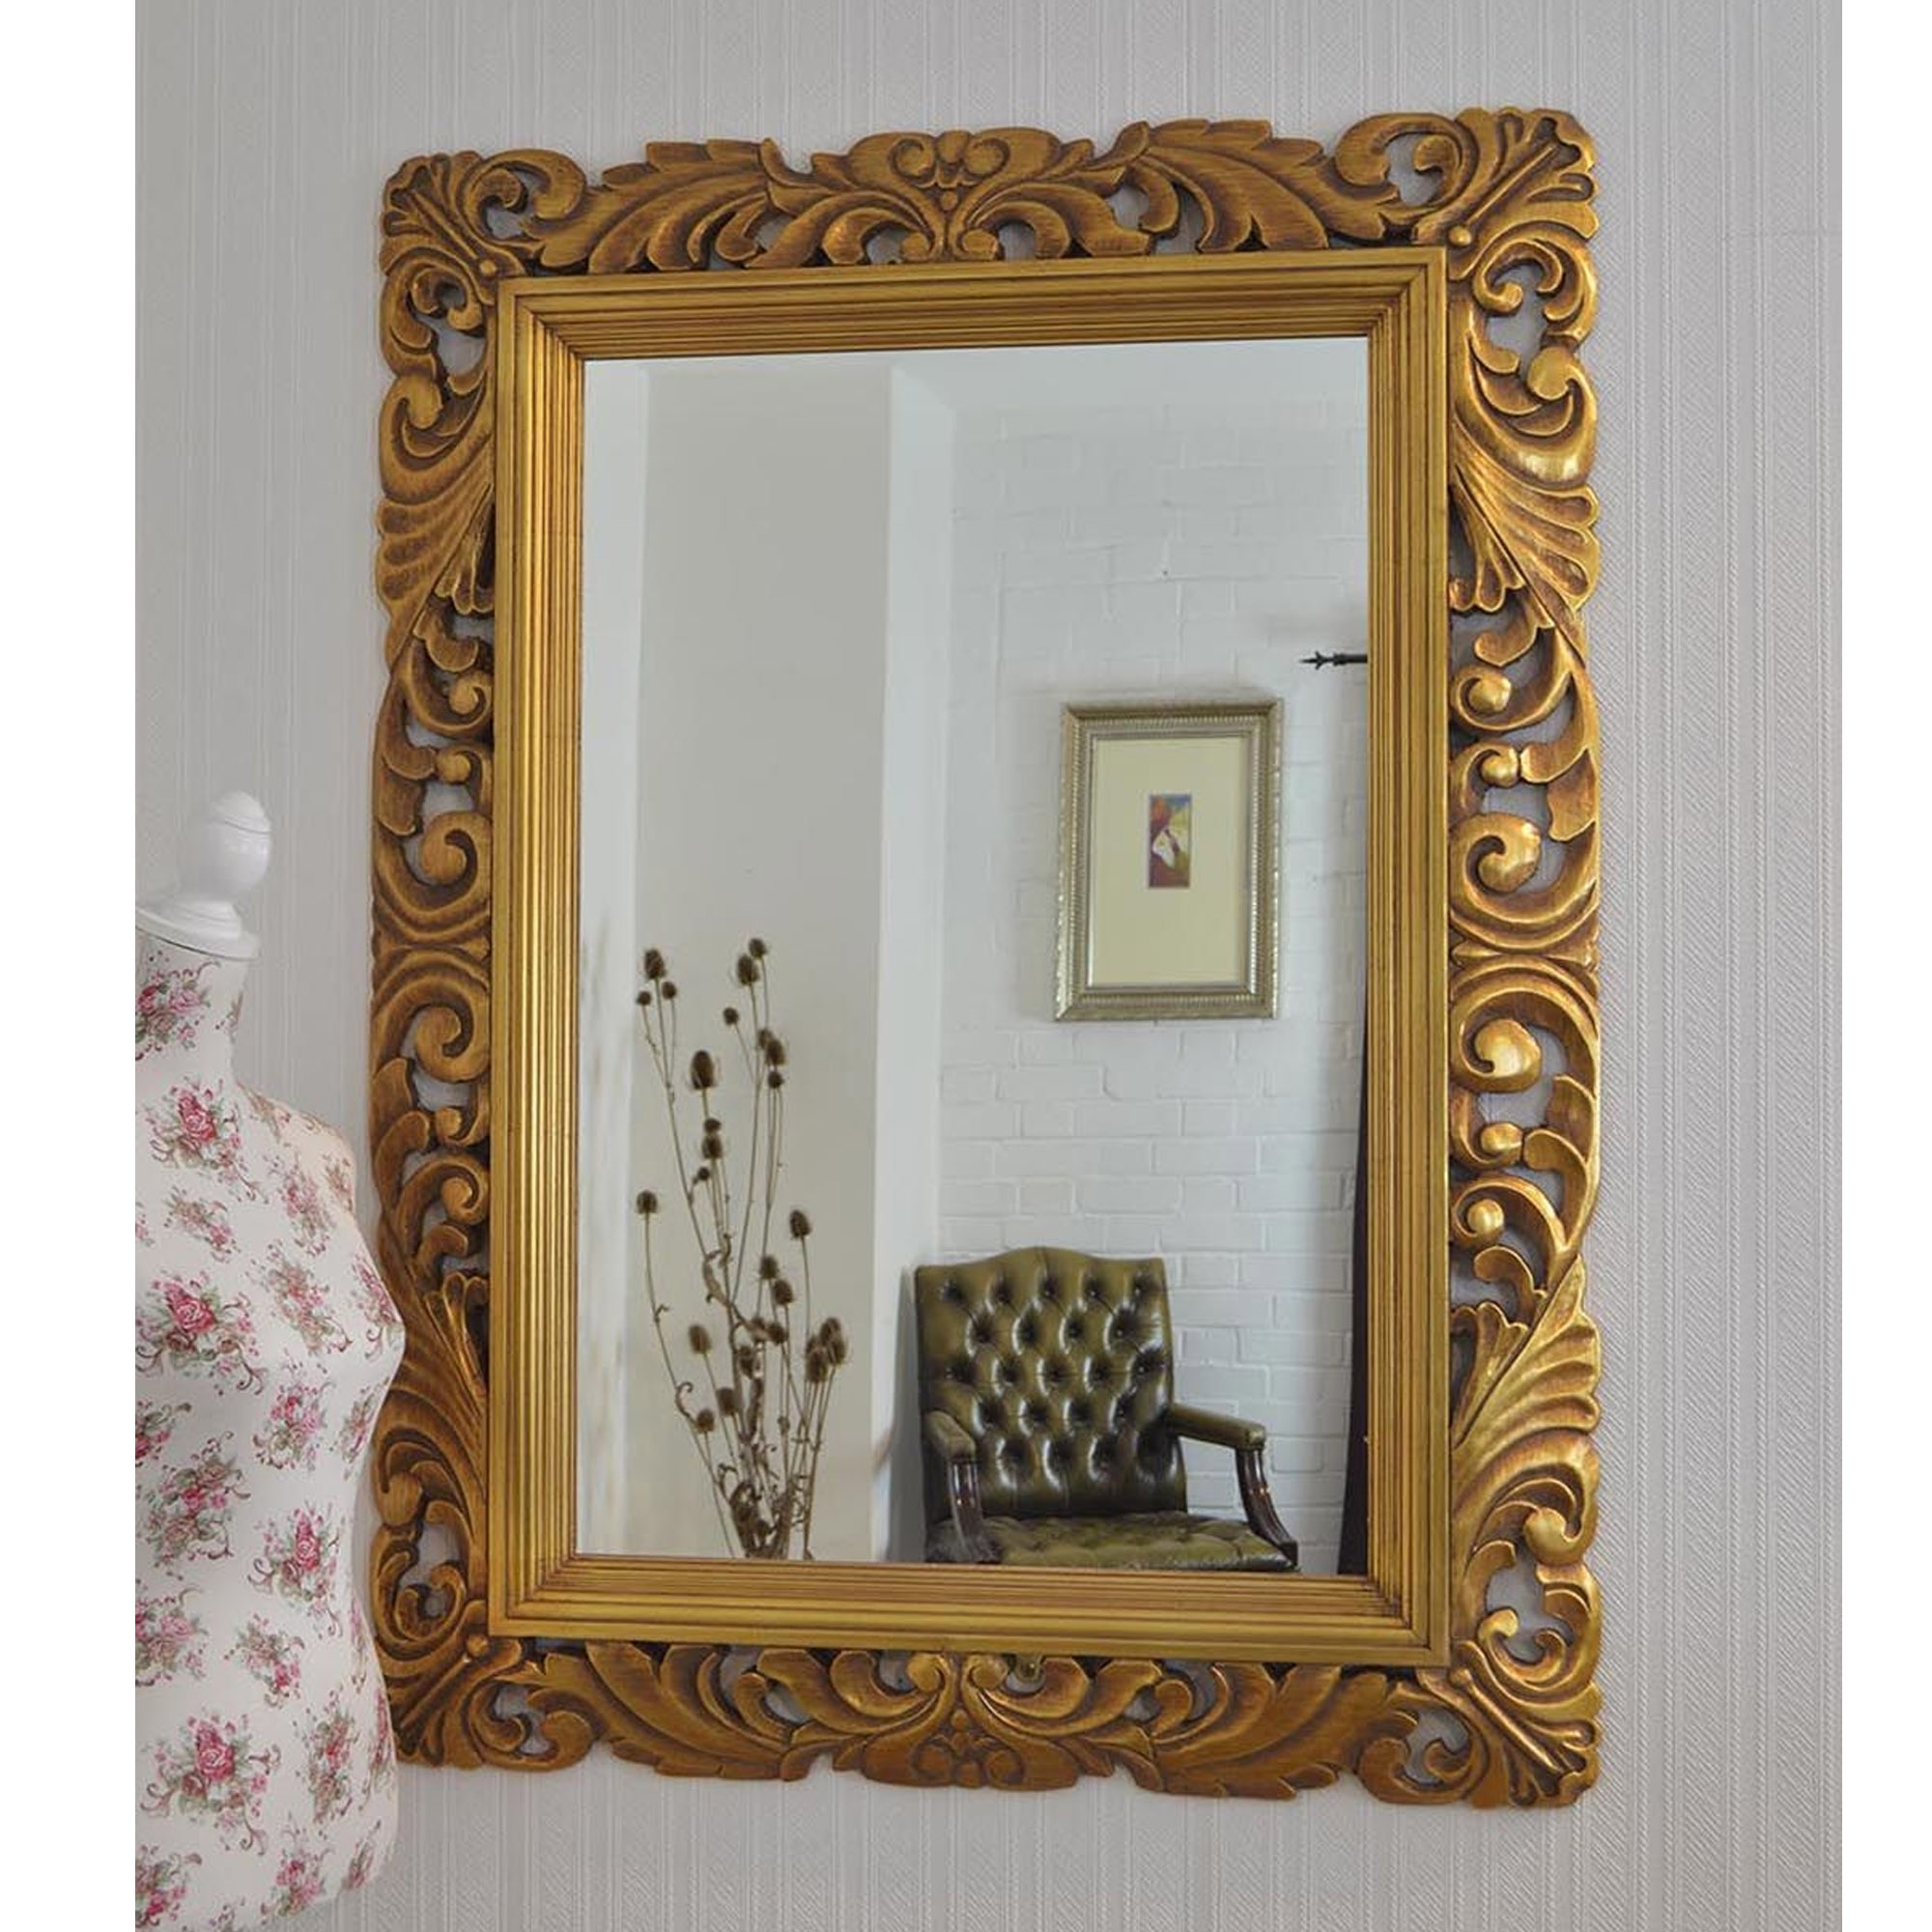 Antique Gold Wall Mirrors Throughout Recent Ornate Framed Gold Antique French Style Wall Mirror (View 3 of 20)